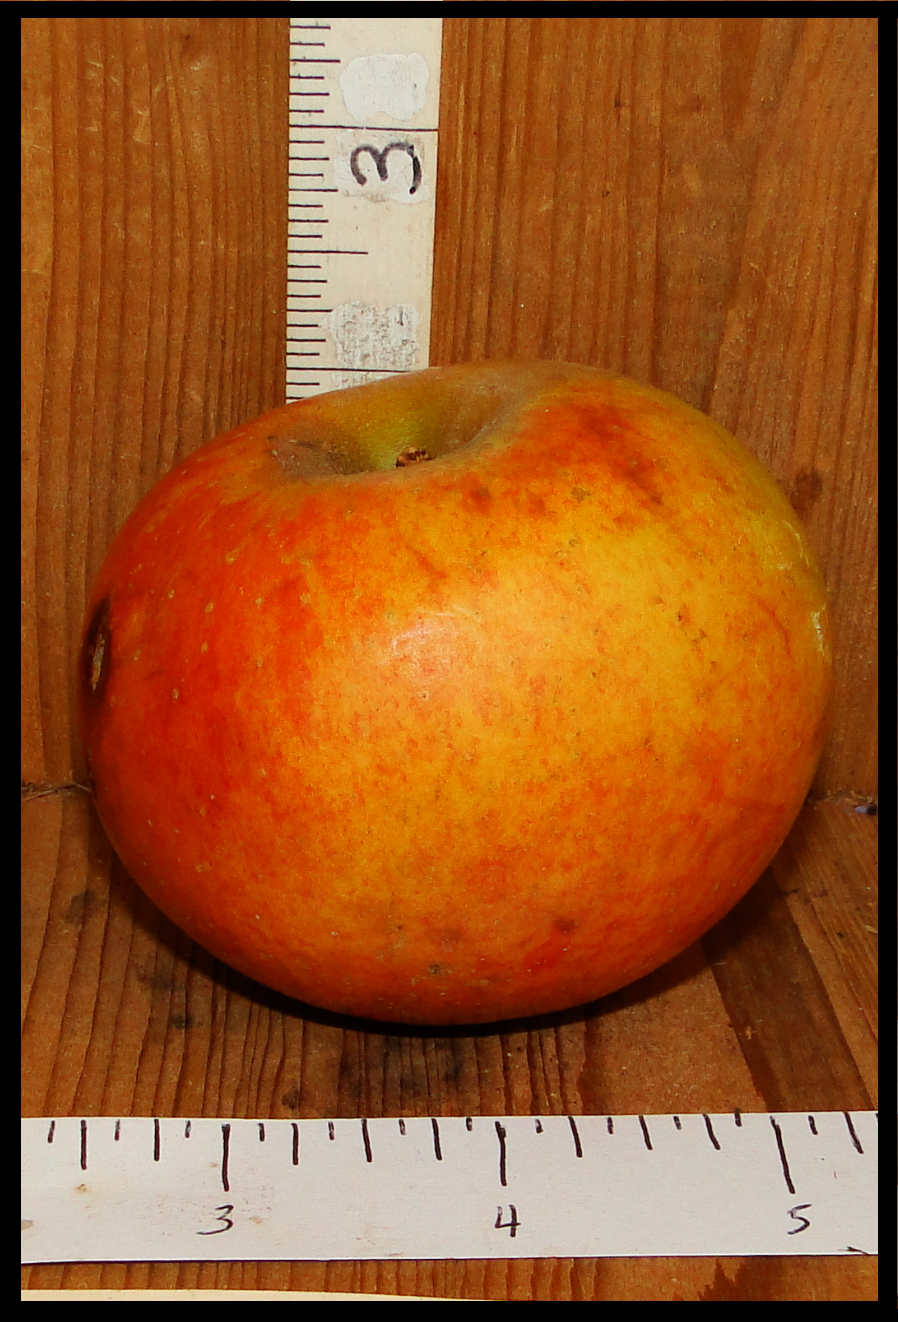 mottled red and orange apple